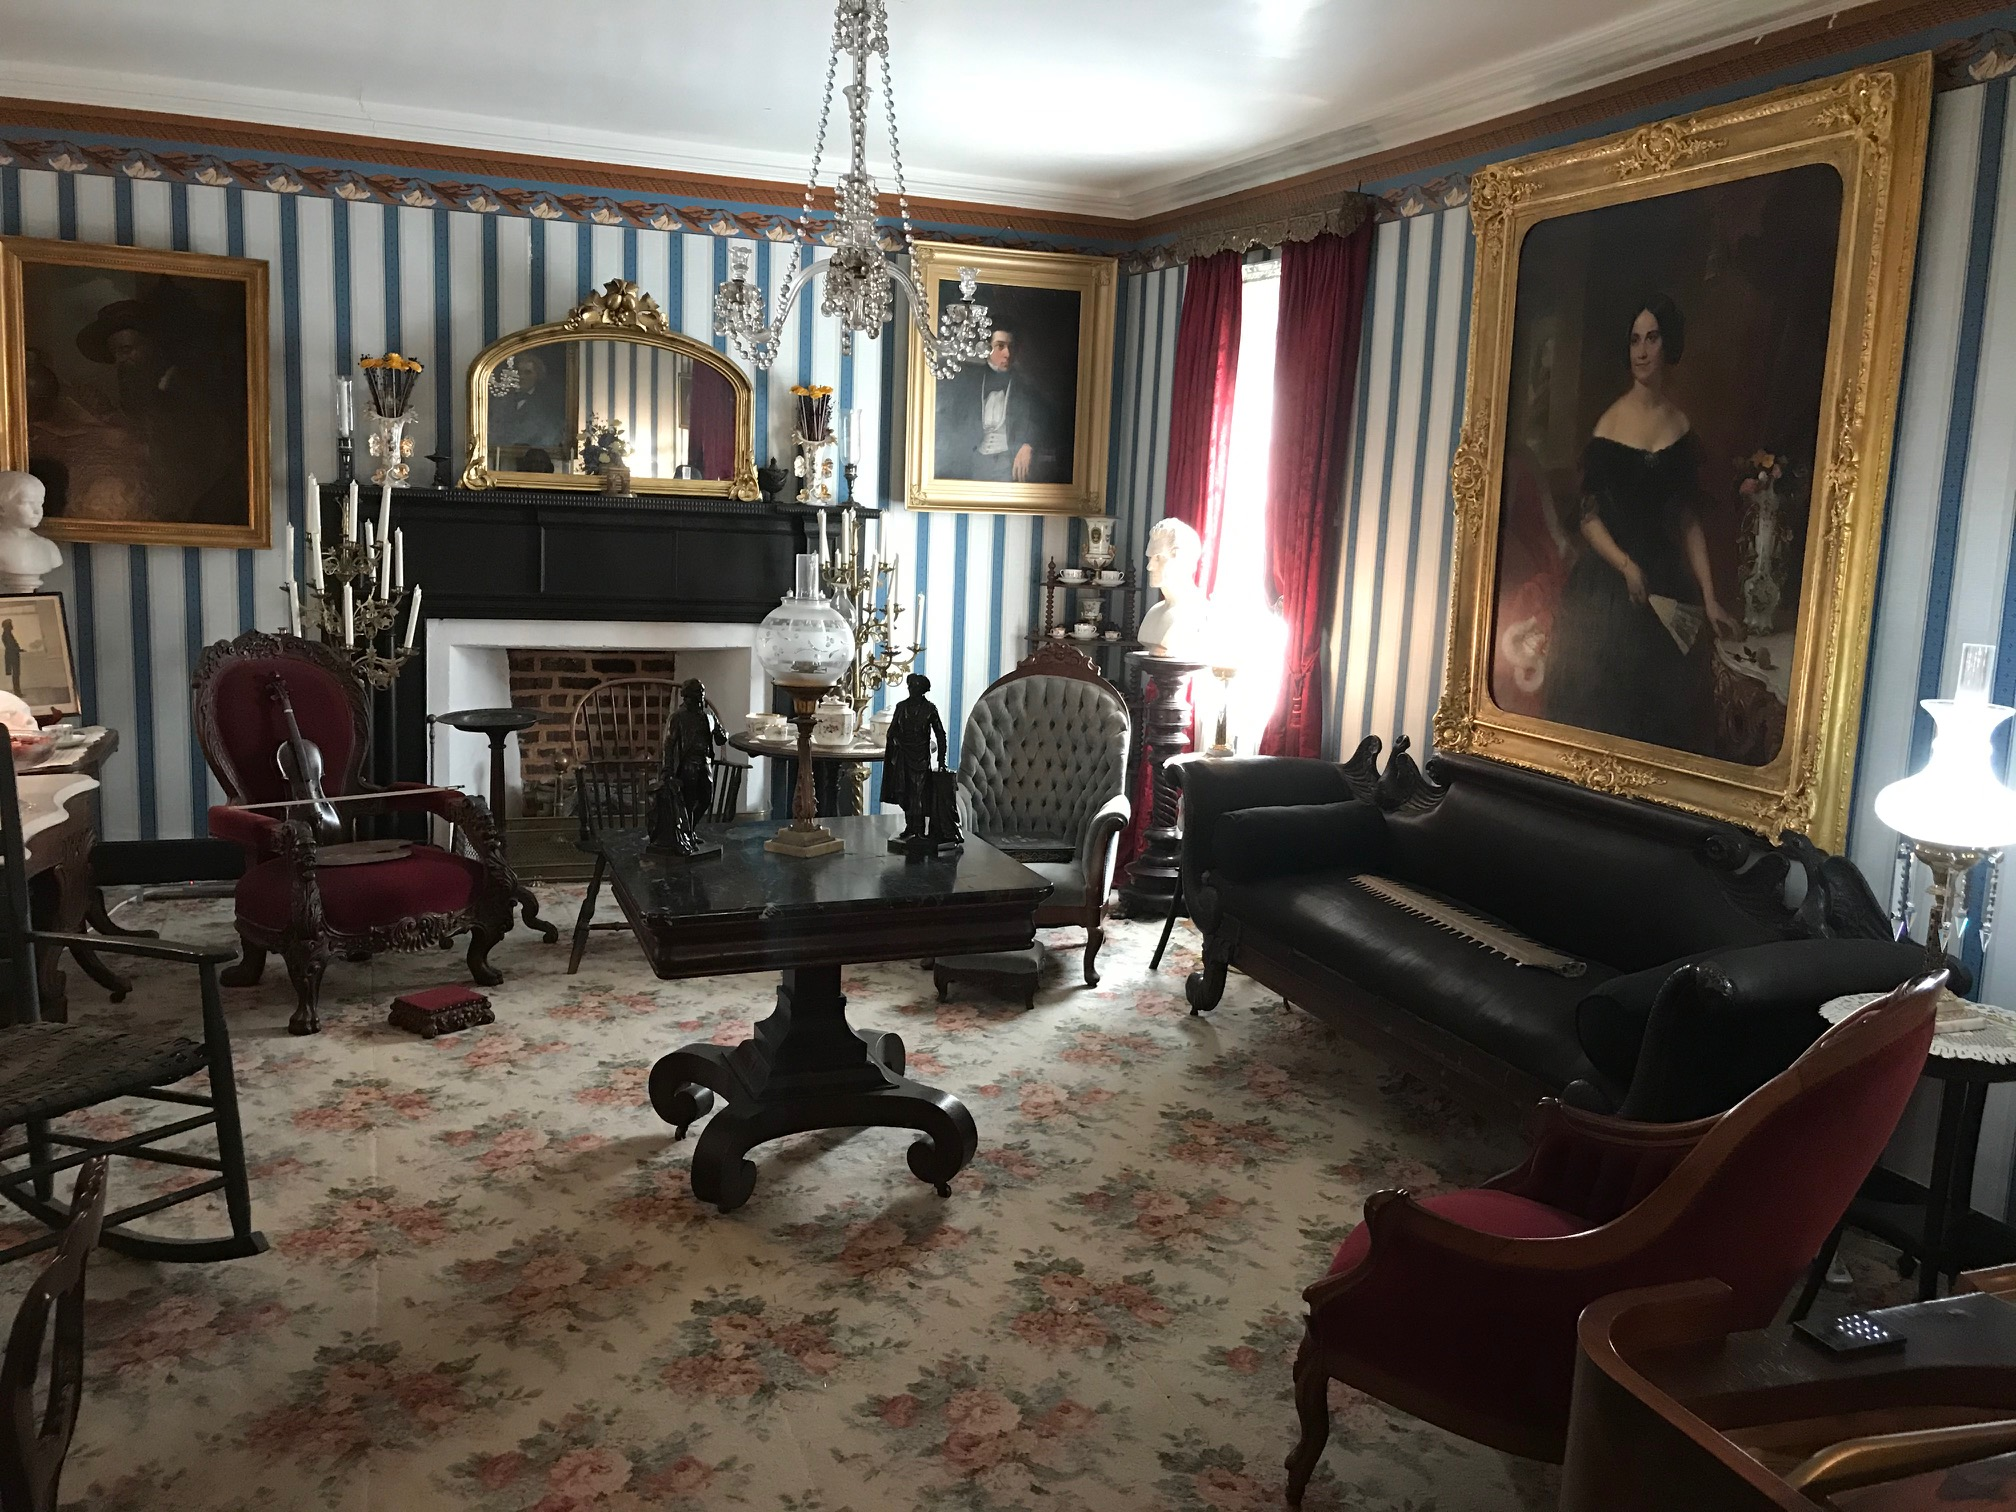 Parlor at Fort Hill